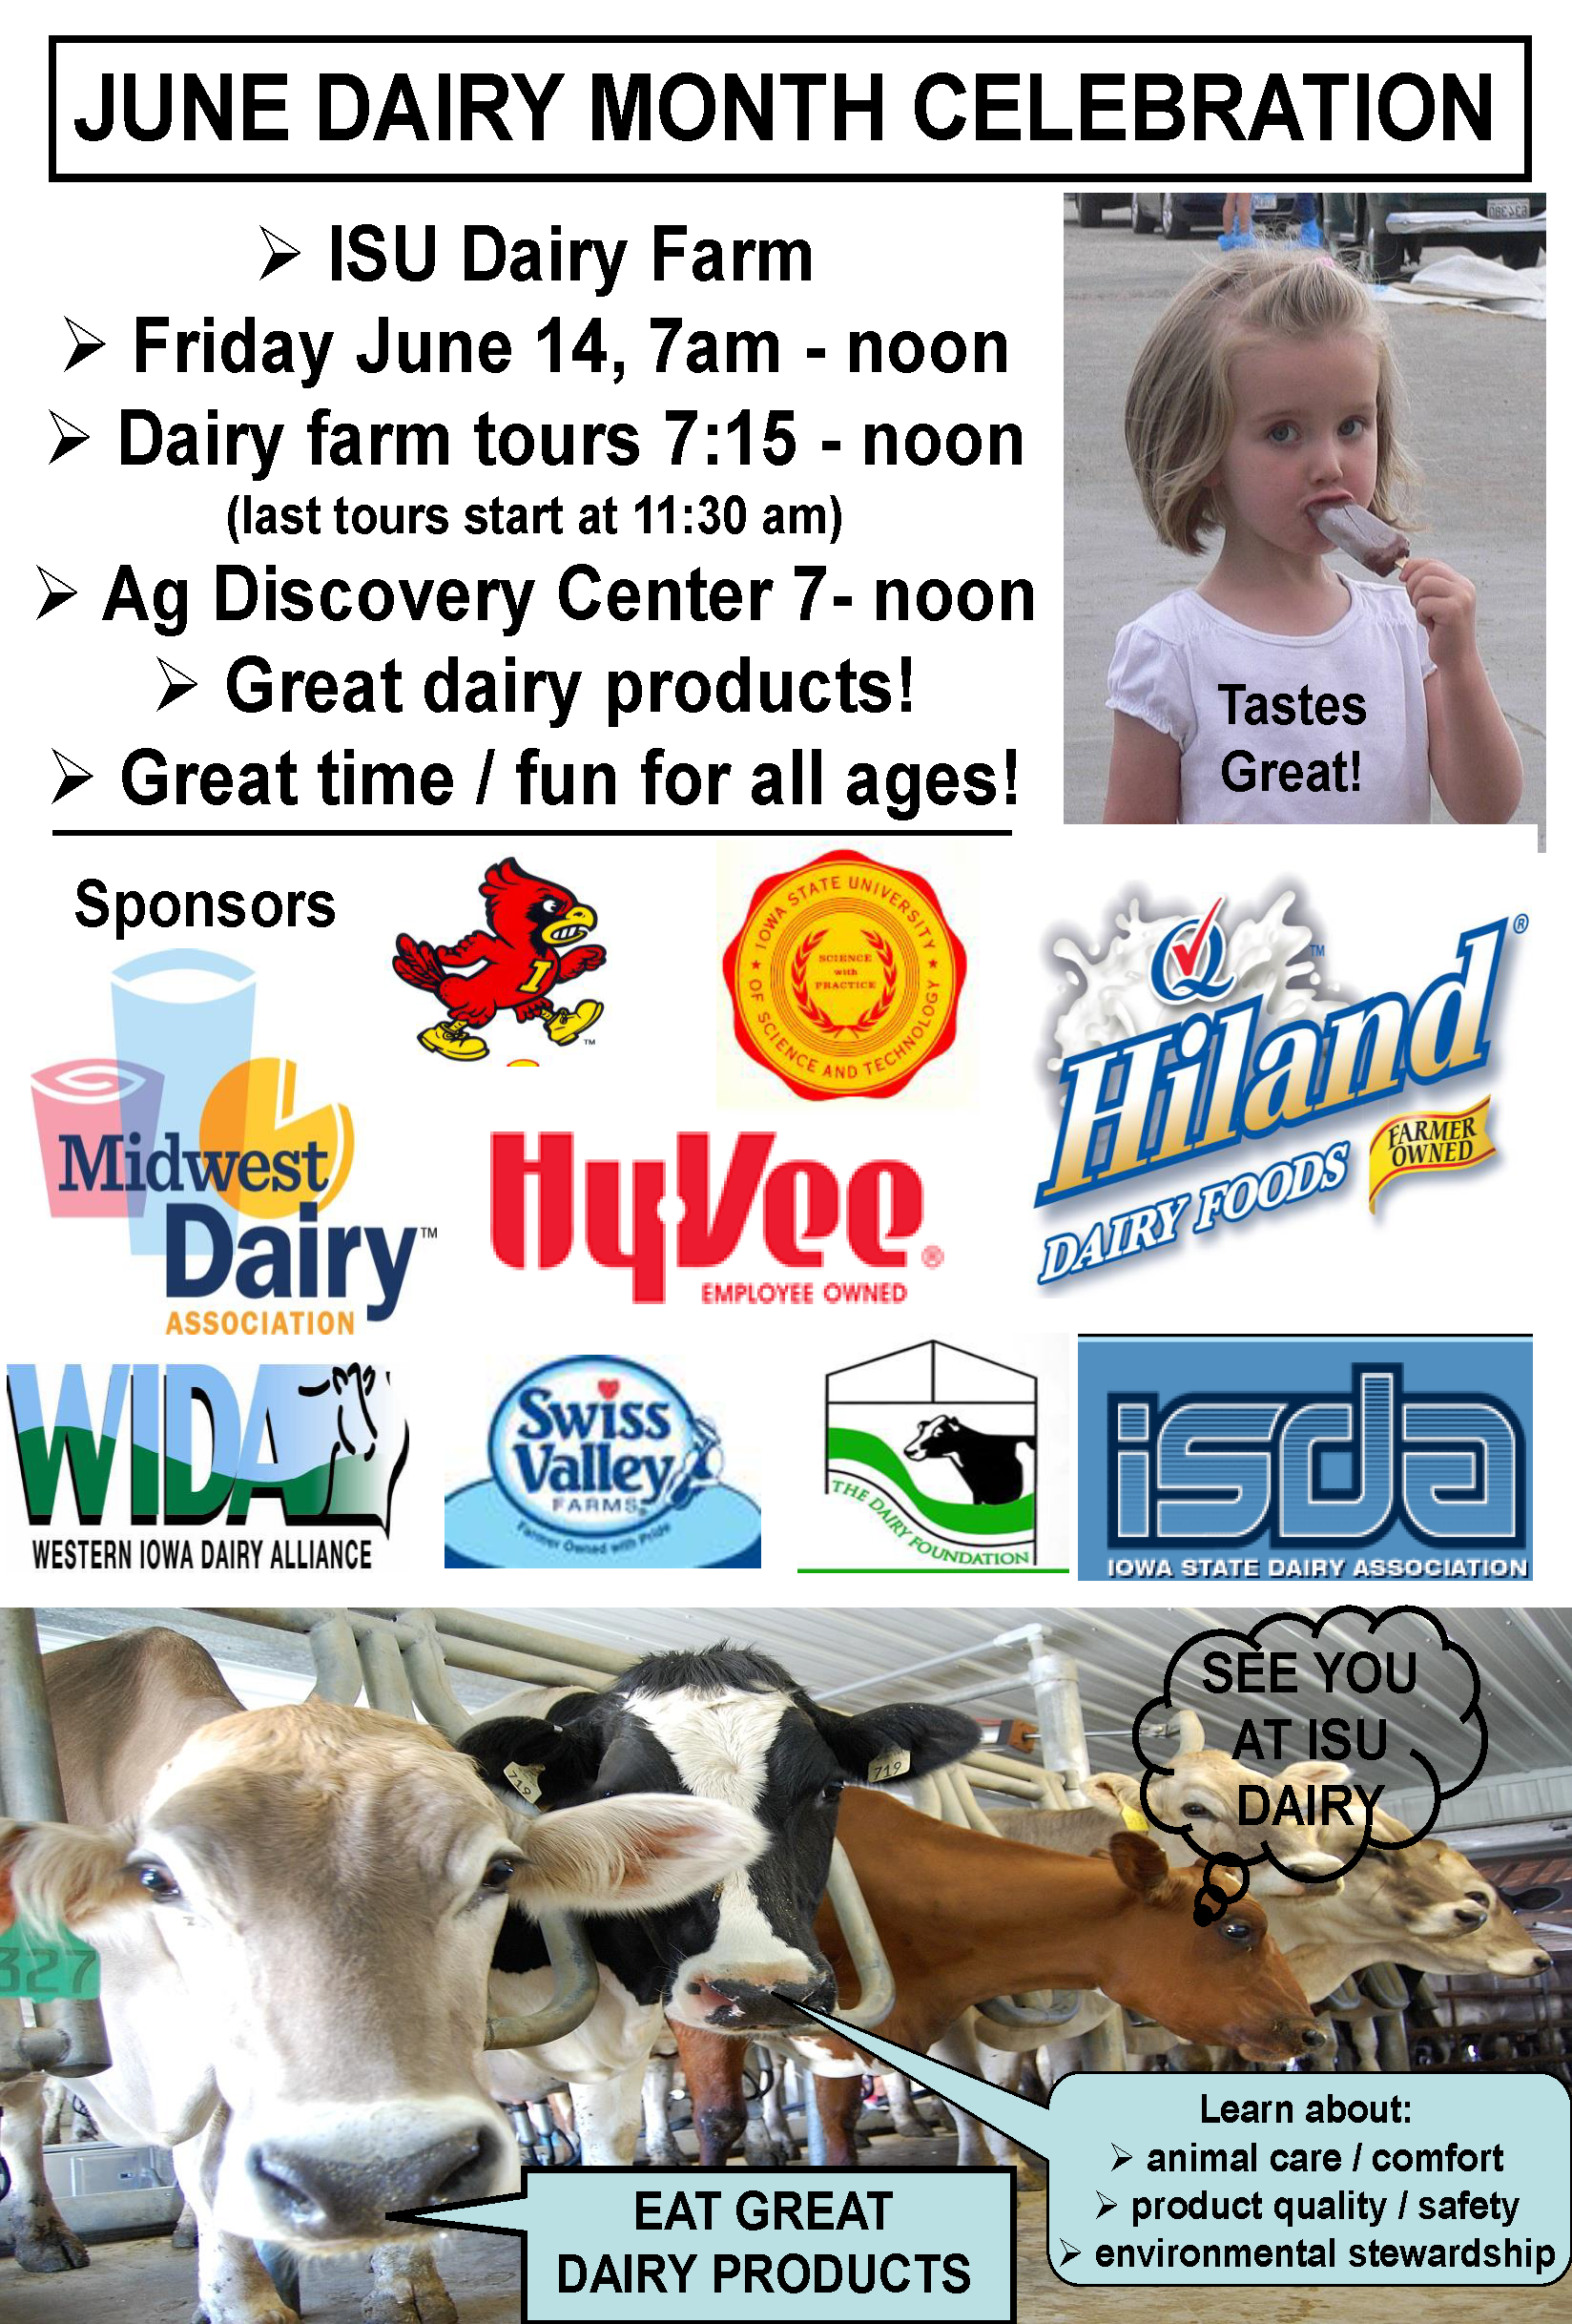 June Dairy Month 2019 flyer